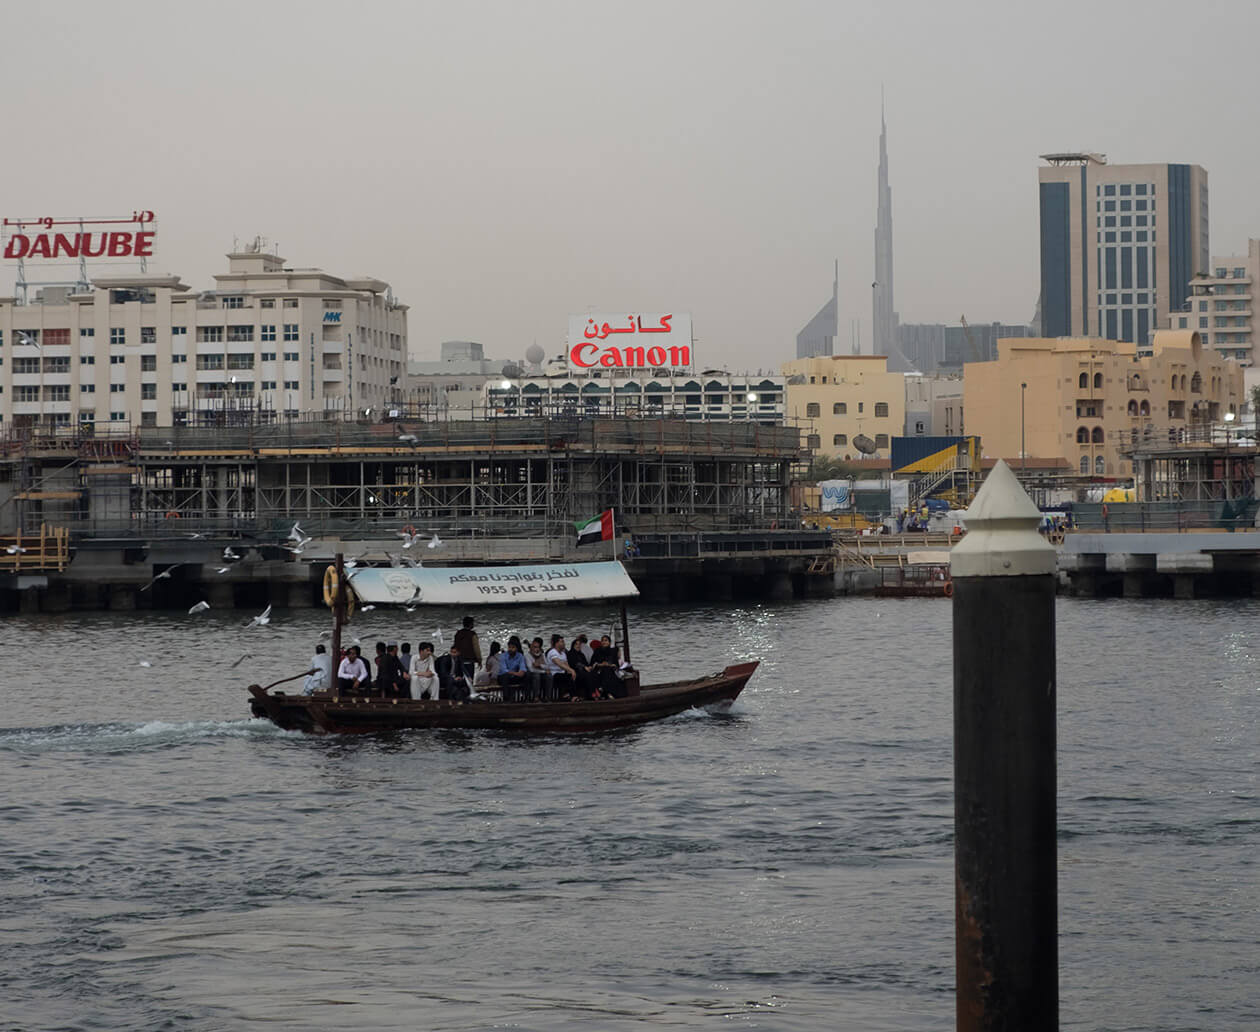 A traditional abra ferry crossing the Dubai Creek with the Burj Khalifa in the distance